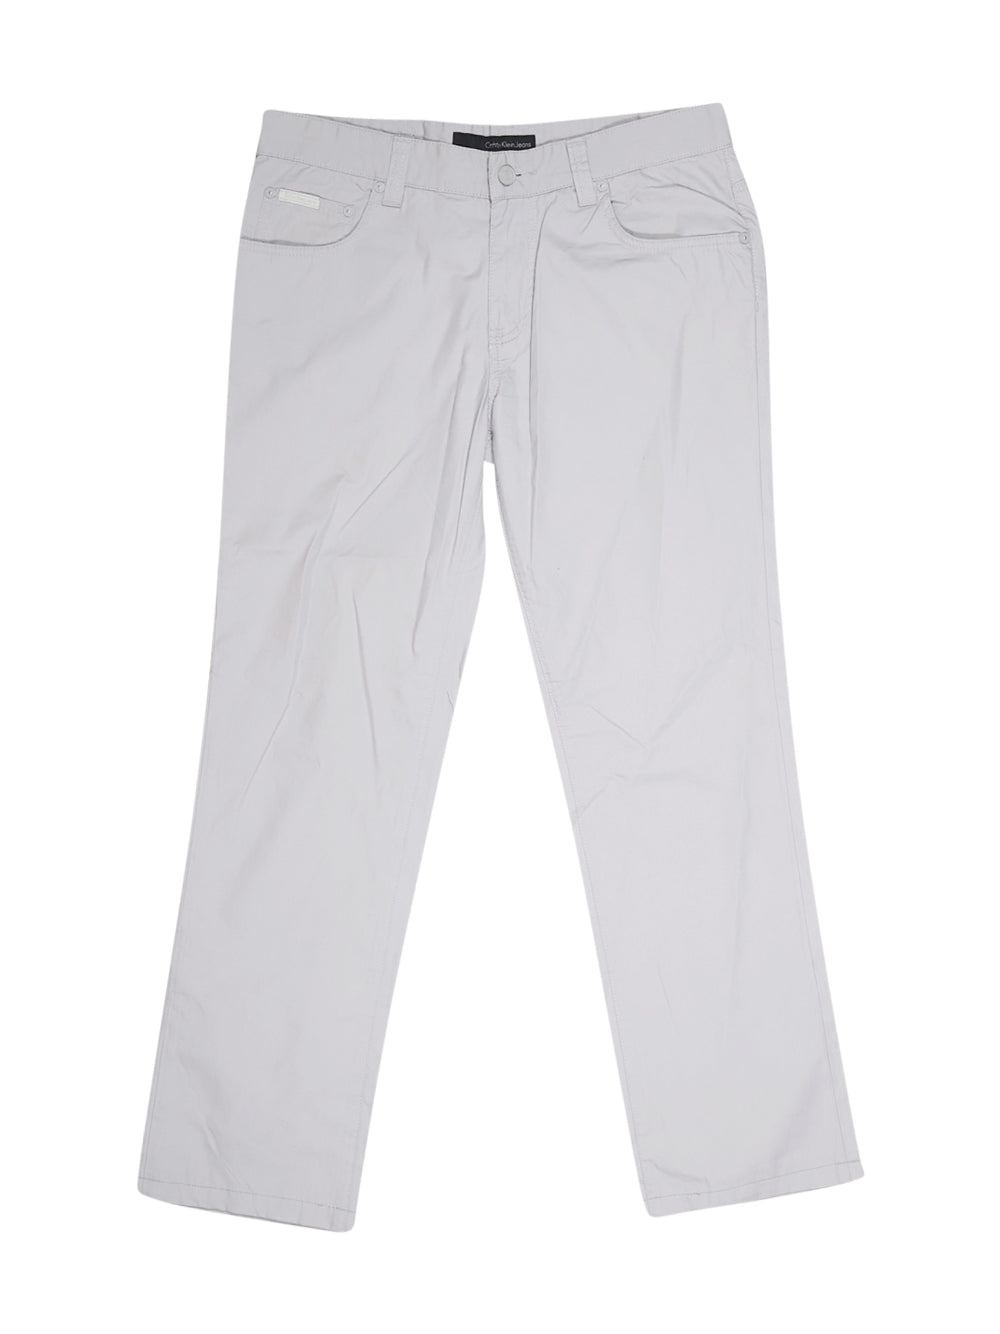 Front photo of Preloved Calvin Klein Grey Man's trousers - size 34/XS